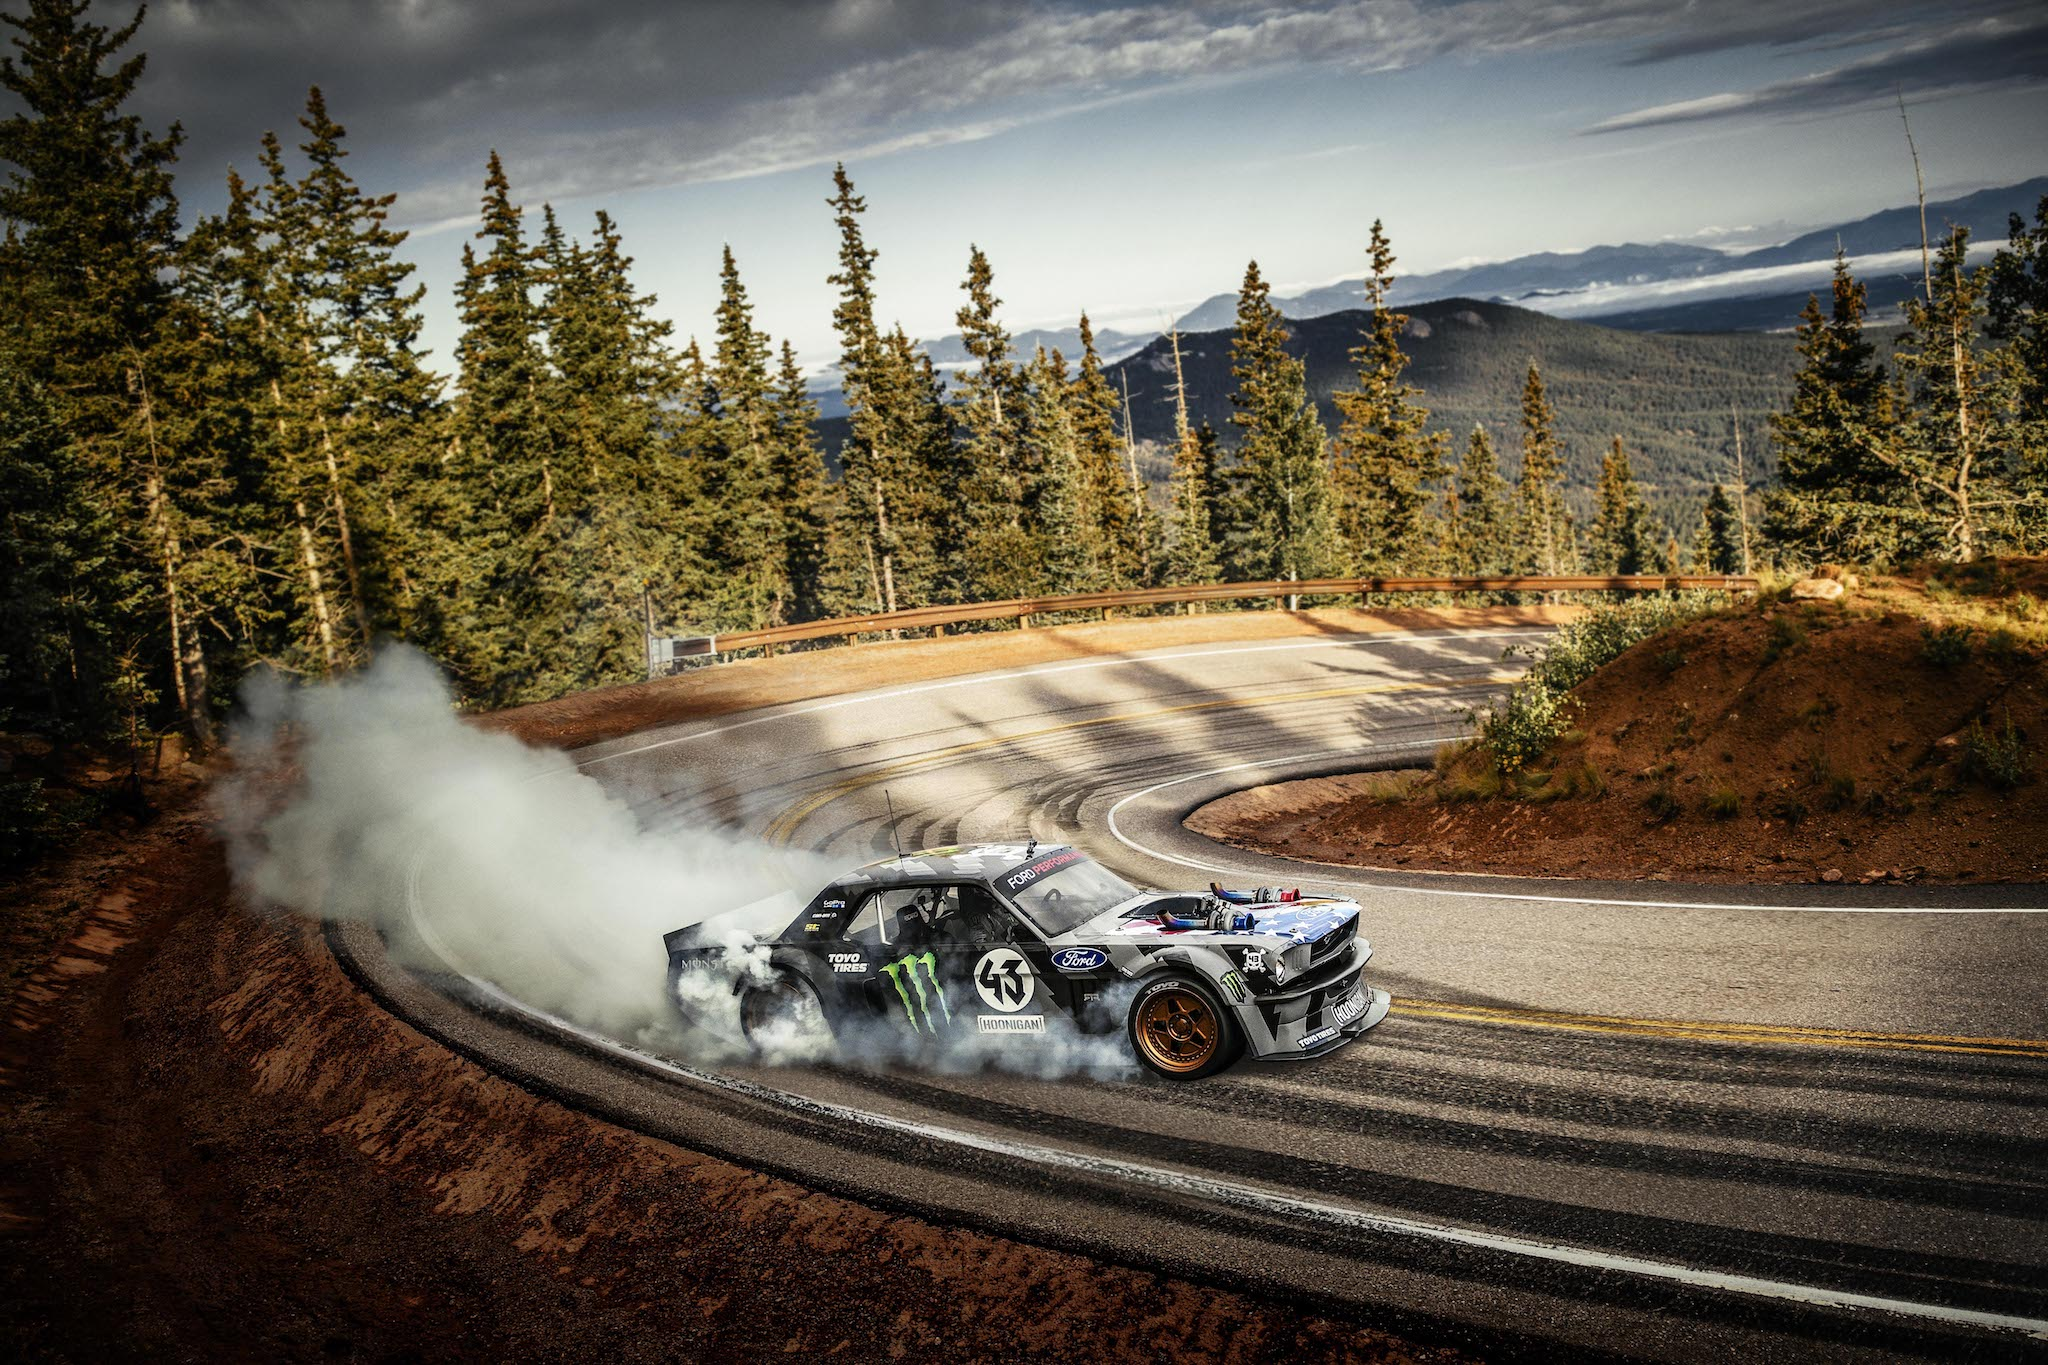 Ken Block S Latest Insane Drifting Video Takes Place On